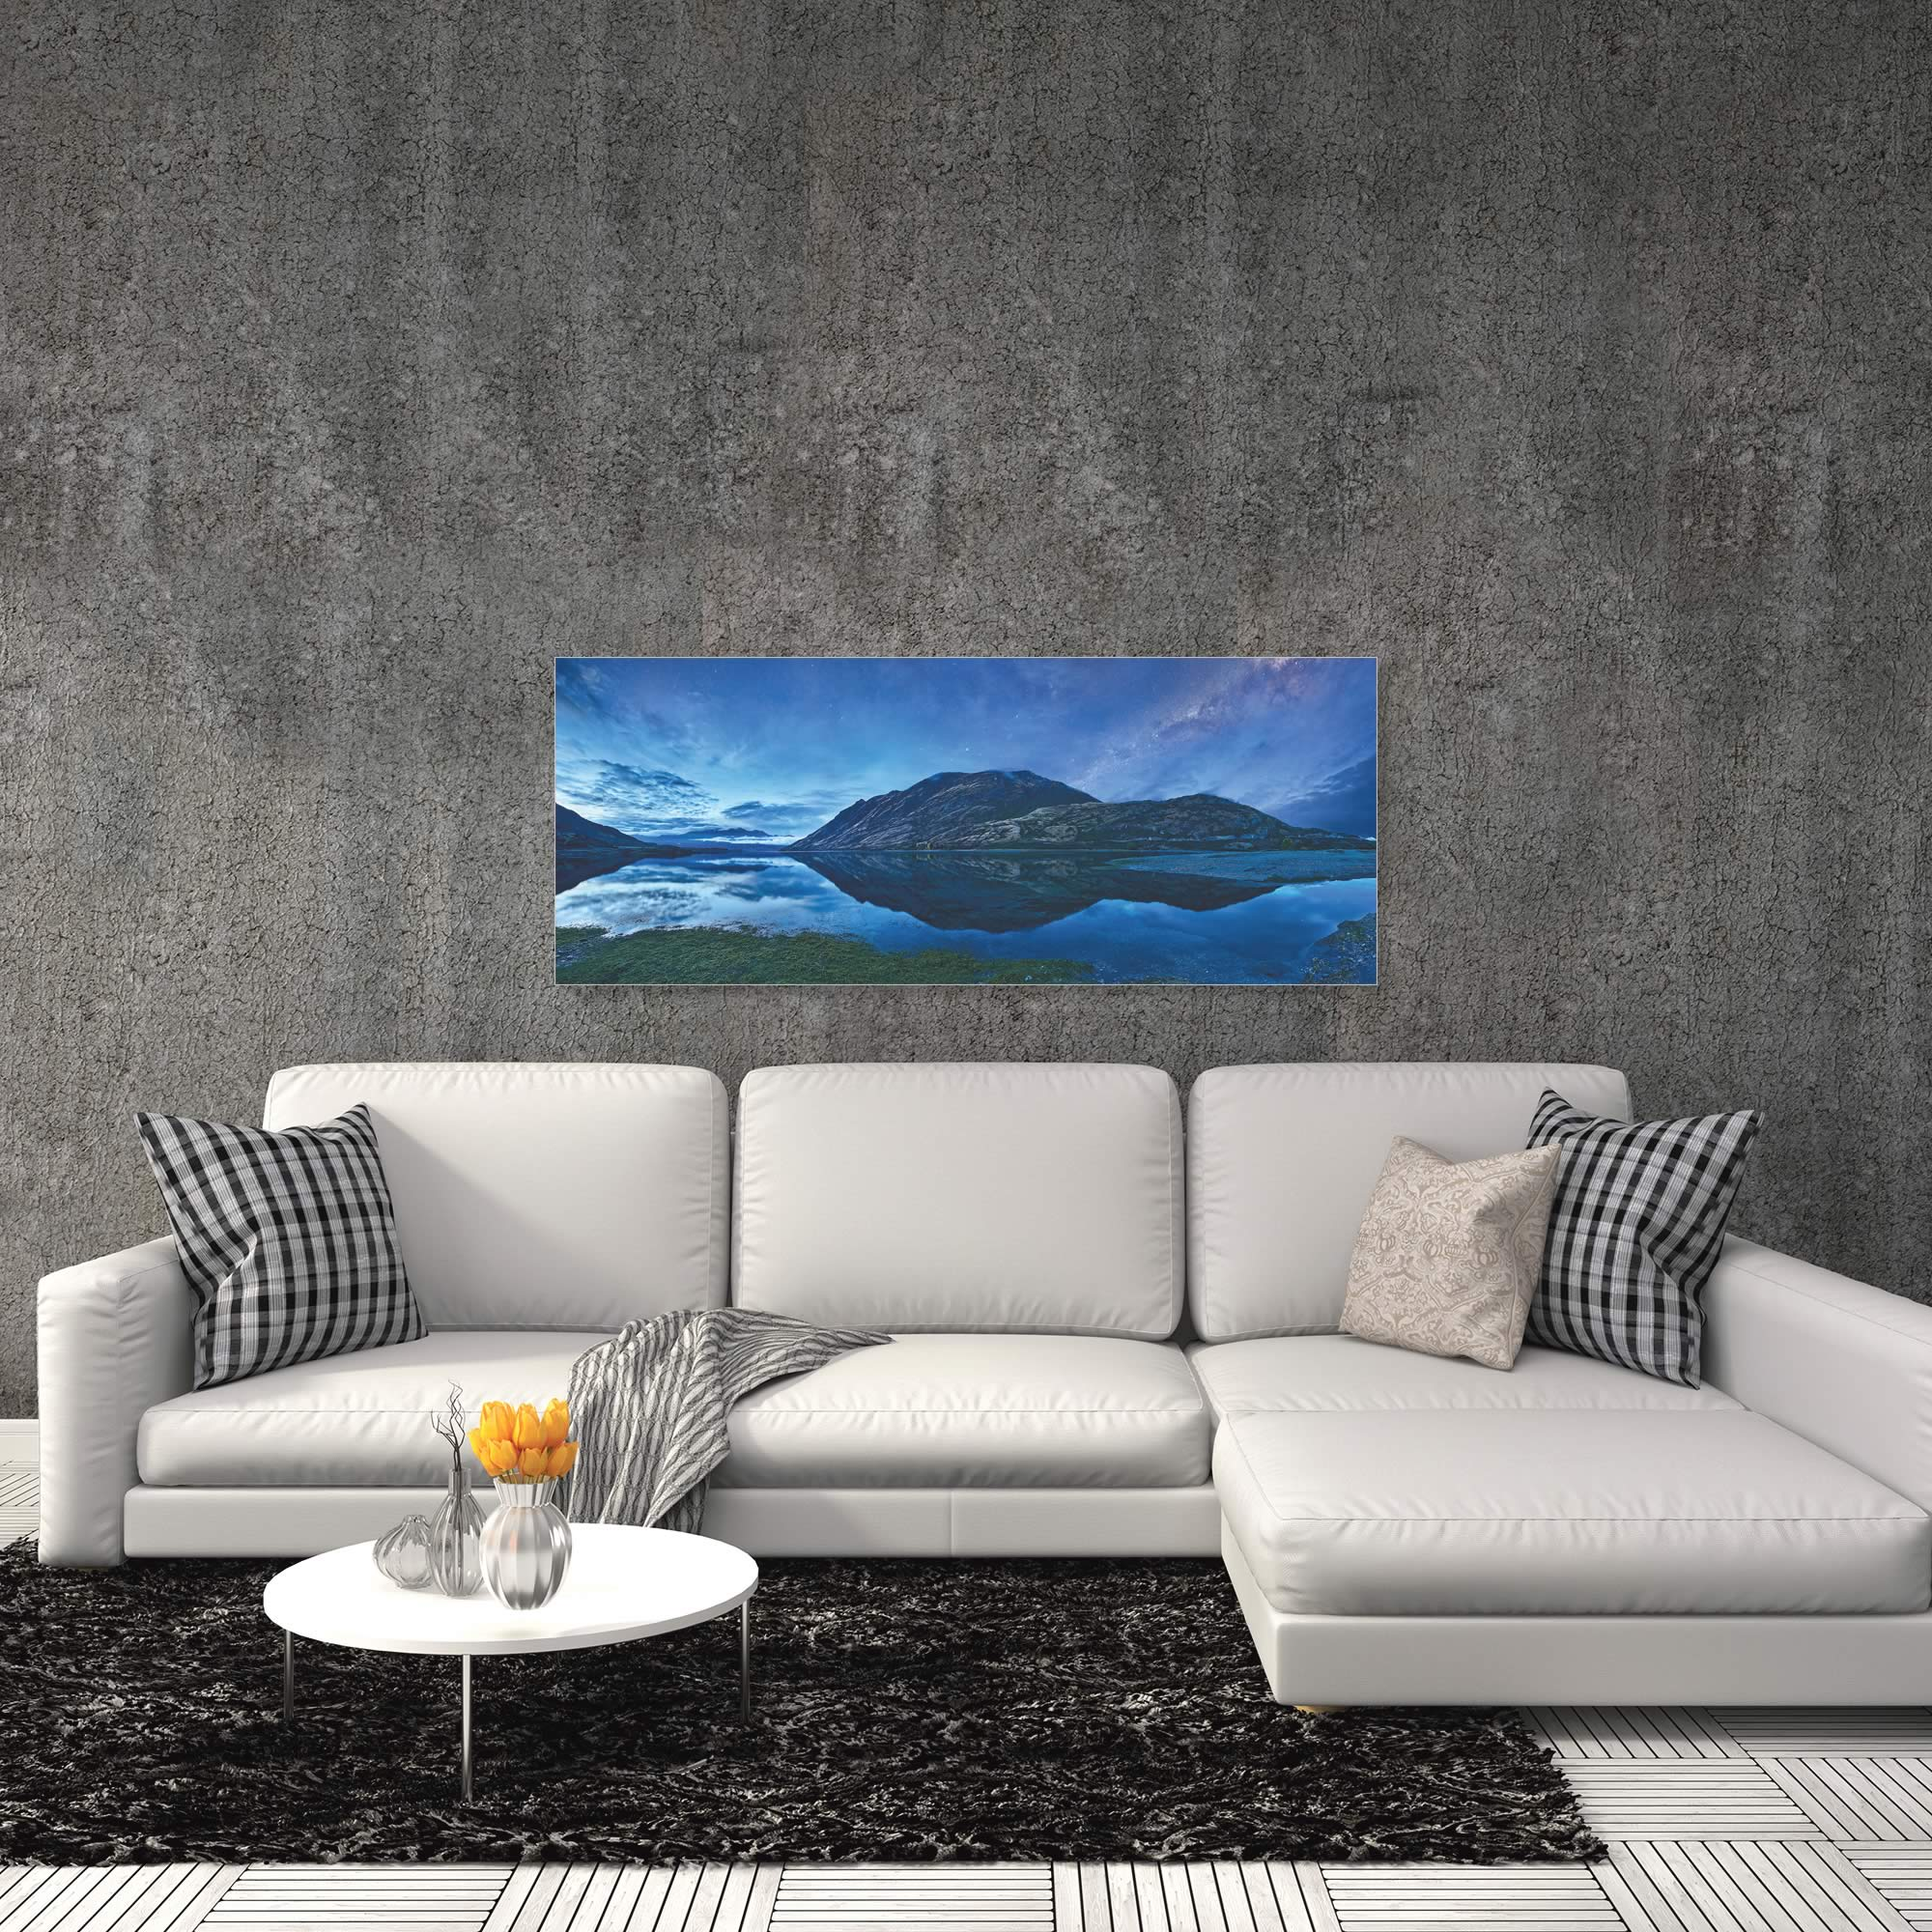 Lake Hawea by Yan Zhang - Landscape Art on Metal or Acrylic - Alternate View 1